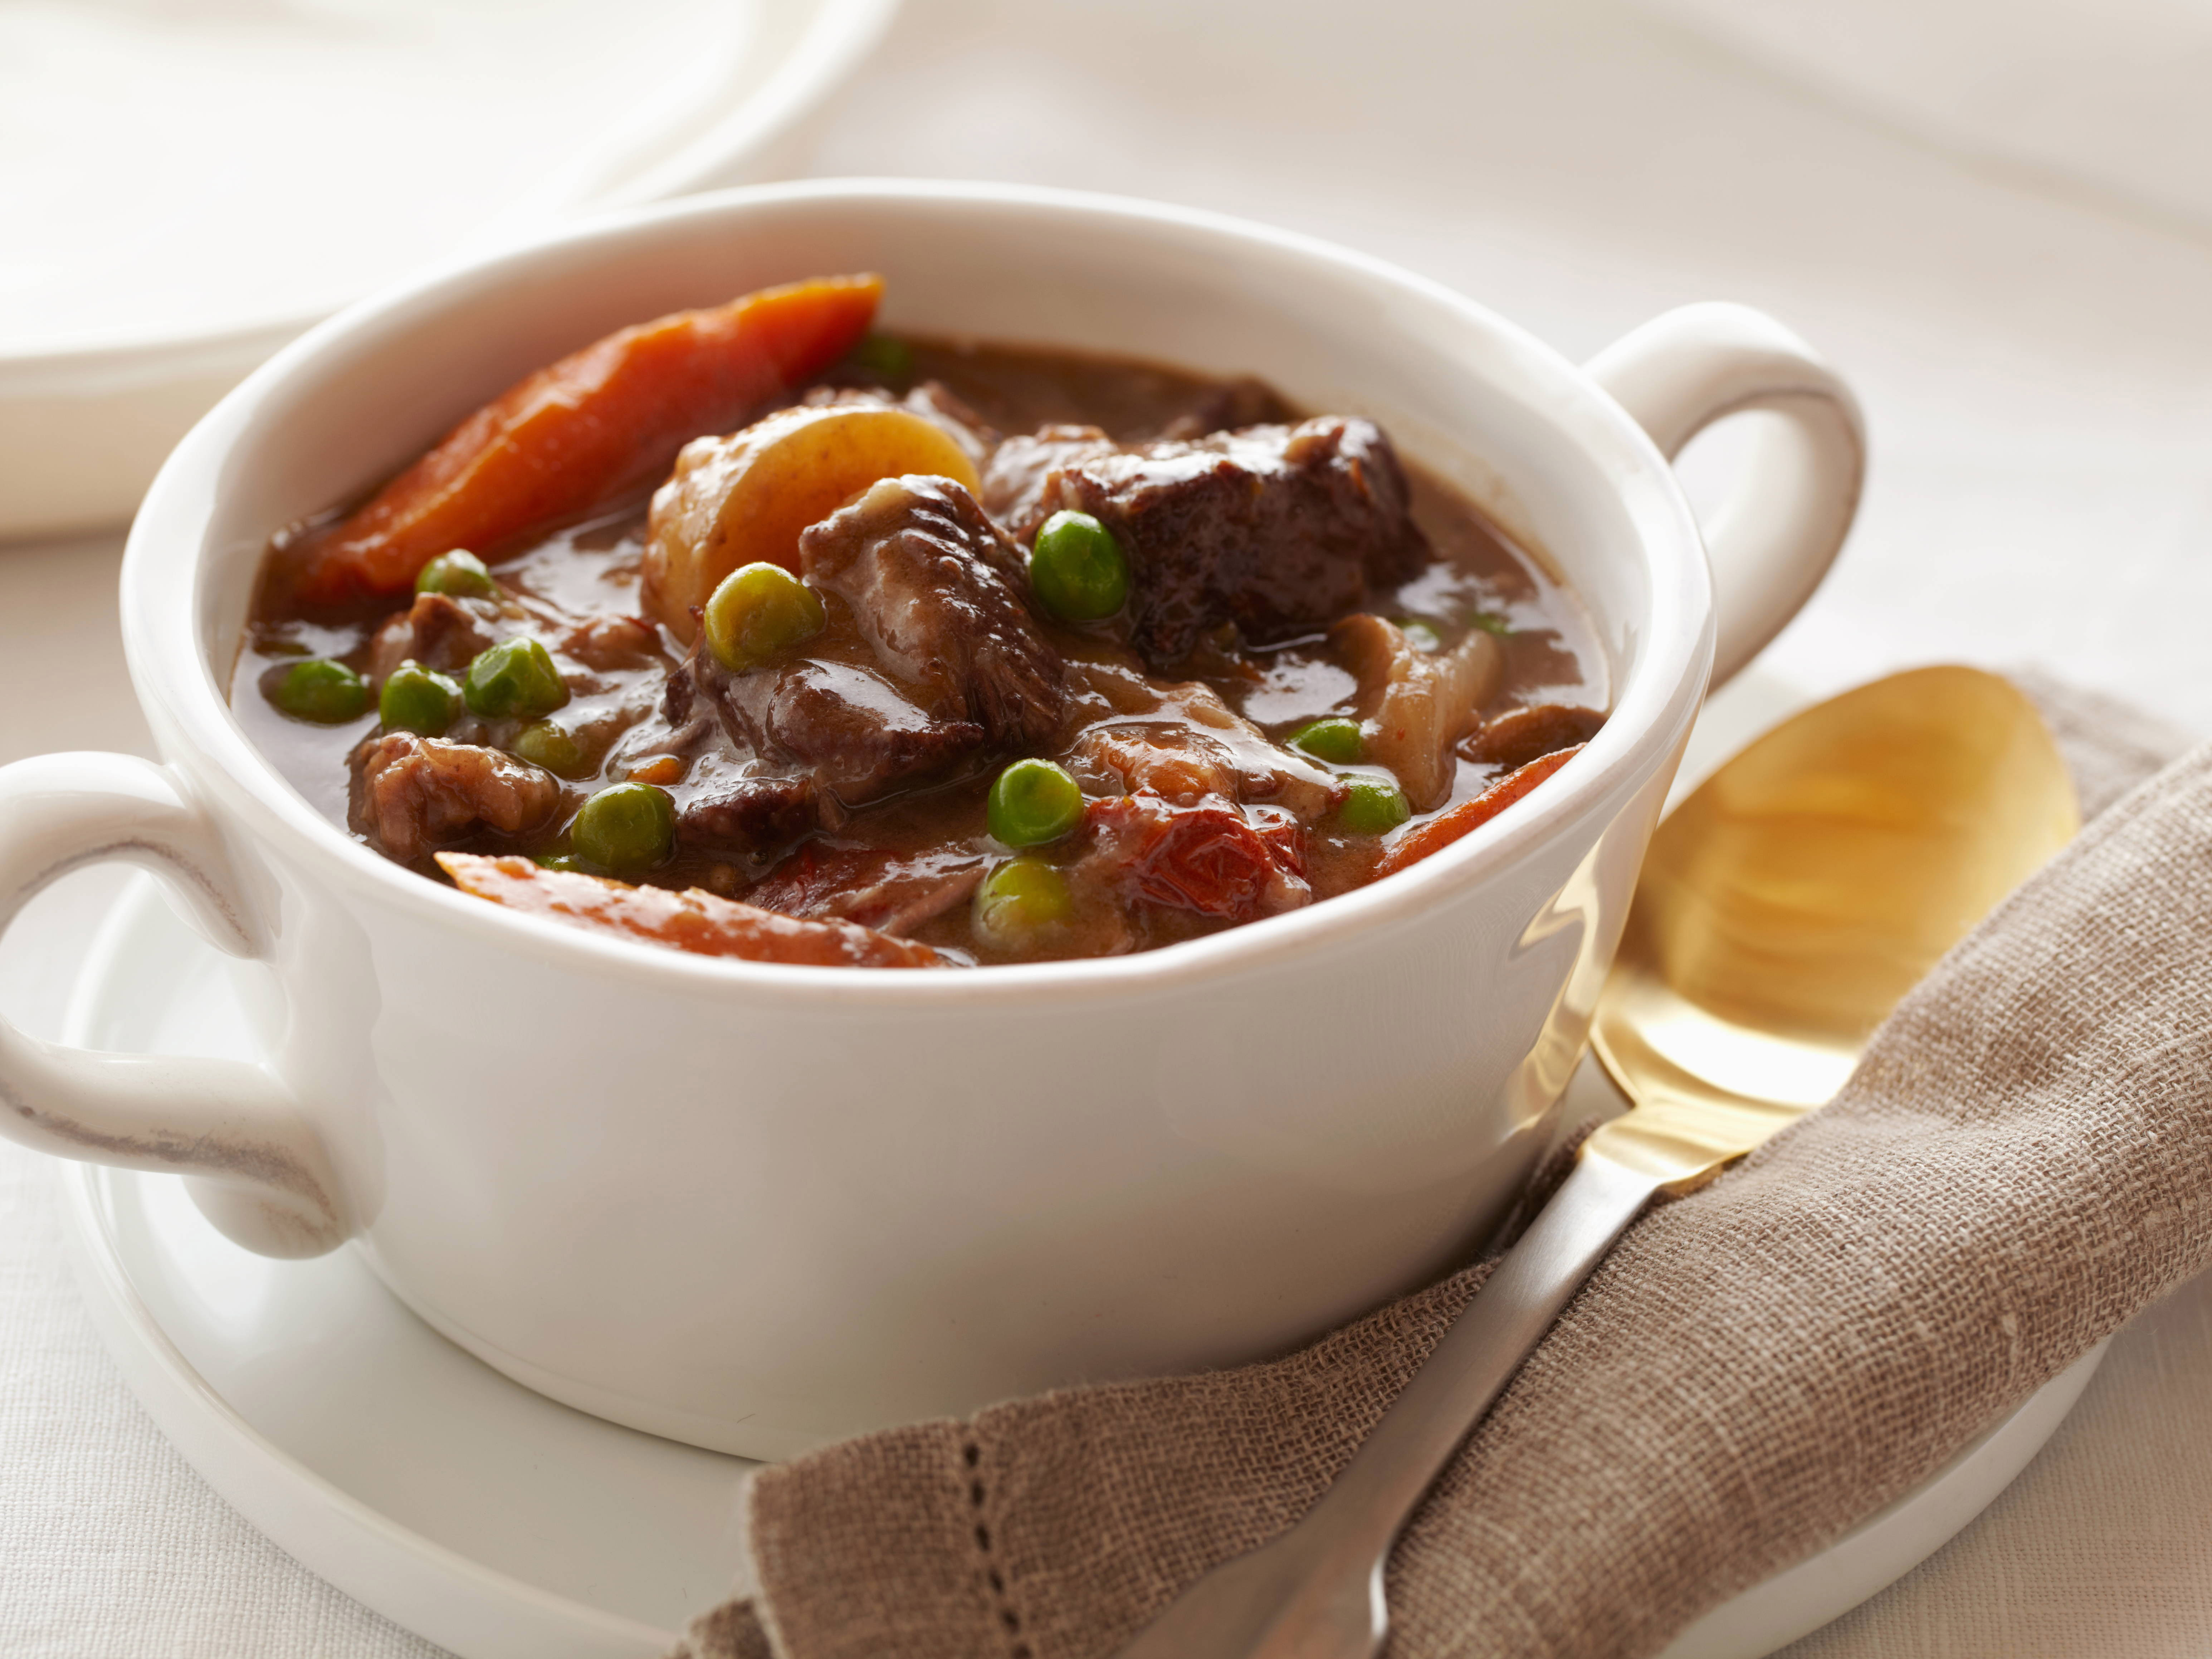 Parkers Beef Stew parker's beef stew (ina garten) | keeprecipes: your universal